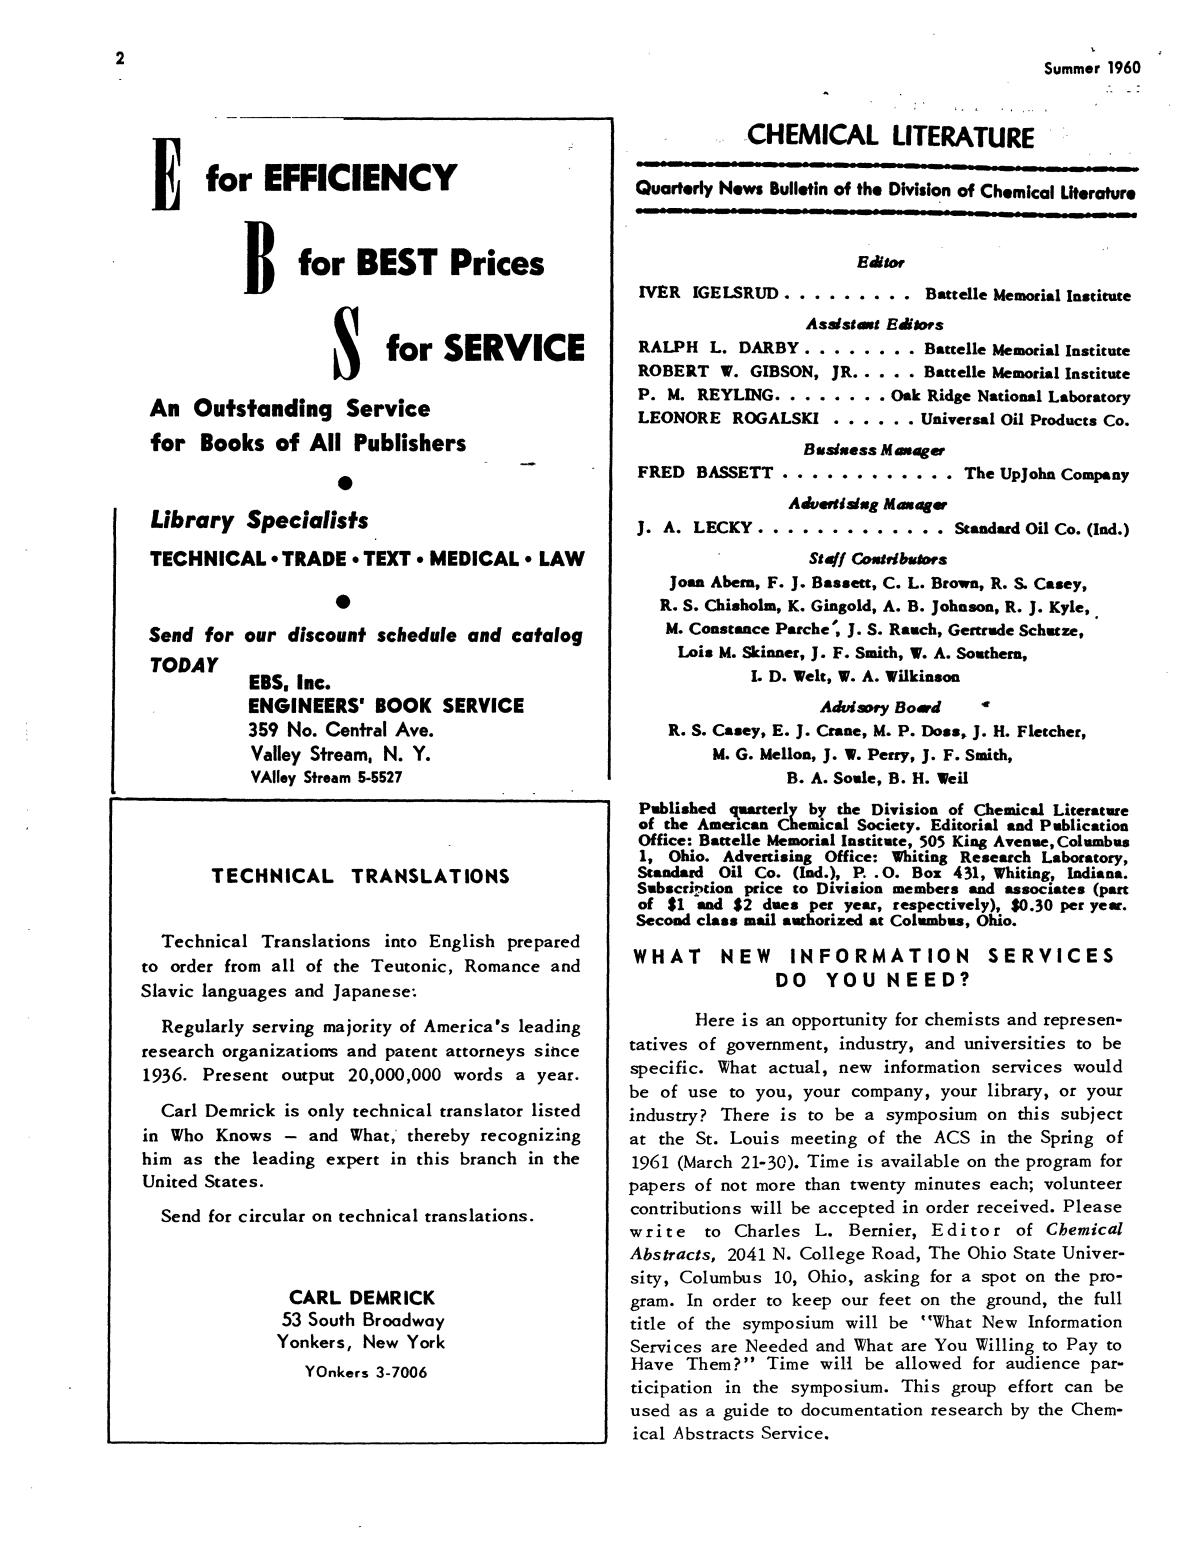 Chemical Literature, Volume 12, Number 2, Summer 1960                                                                                                      2